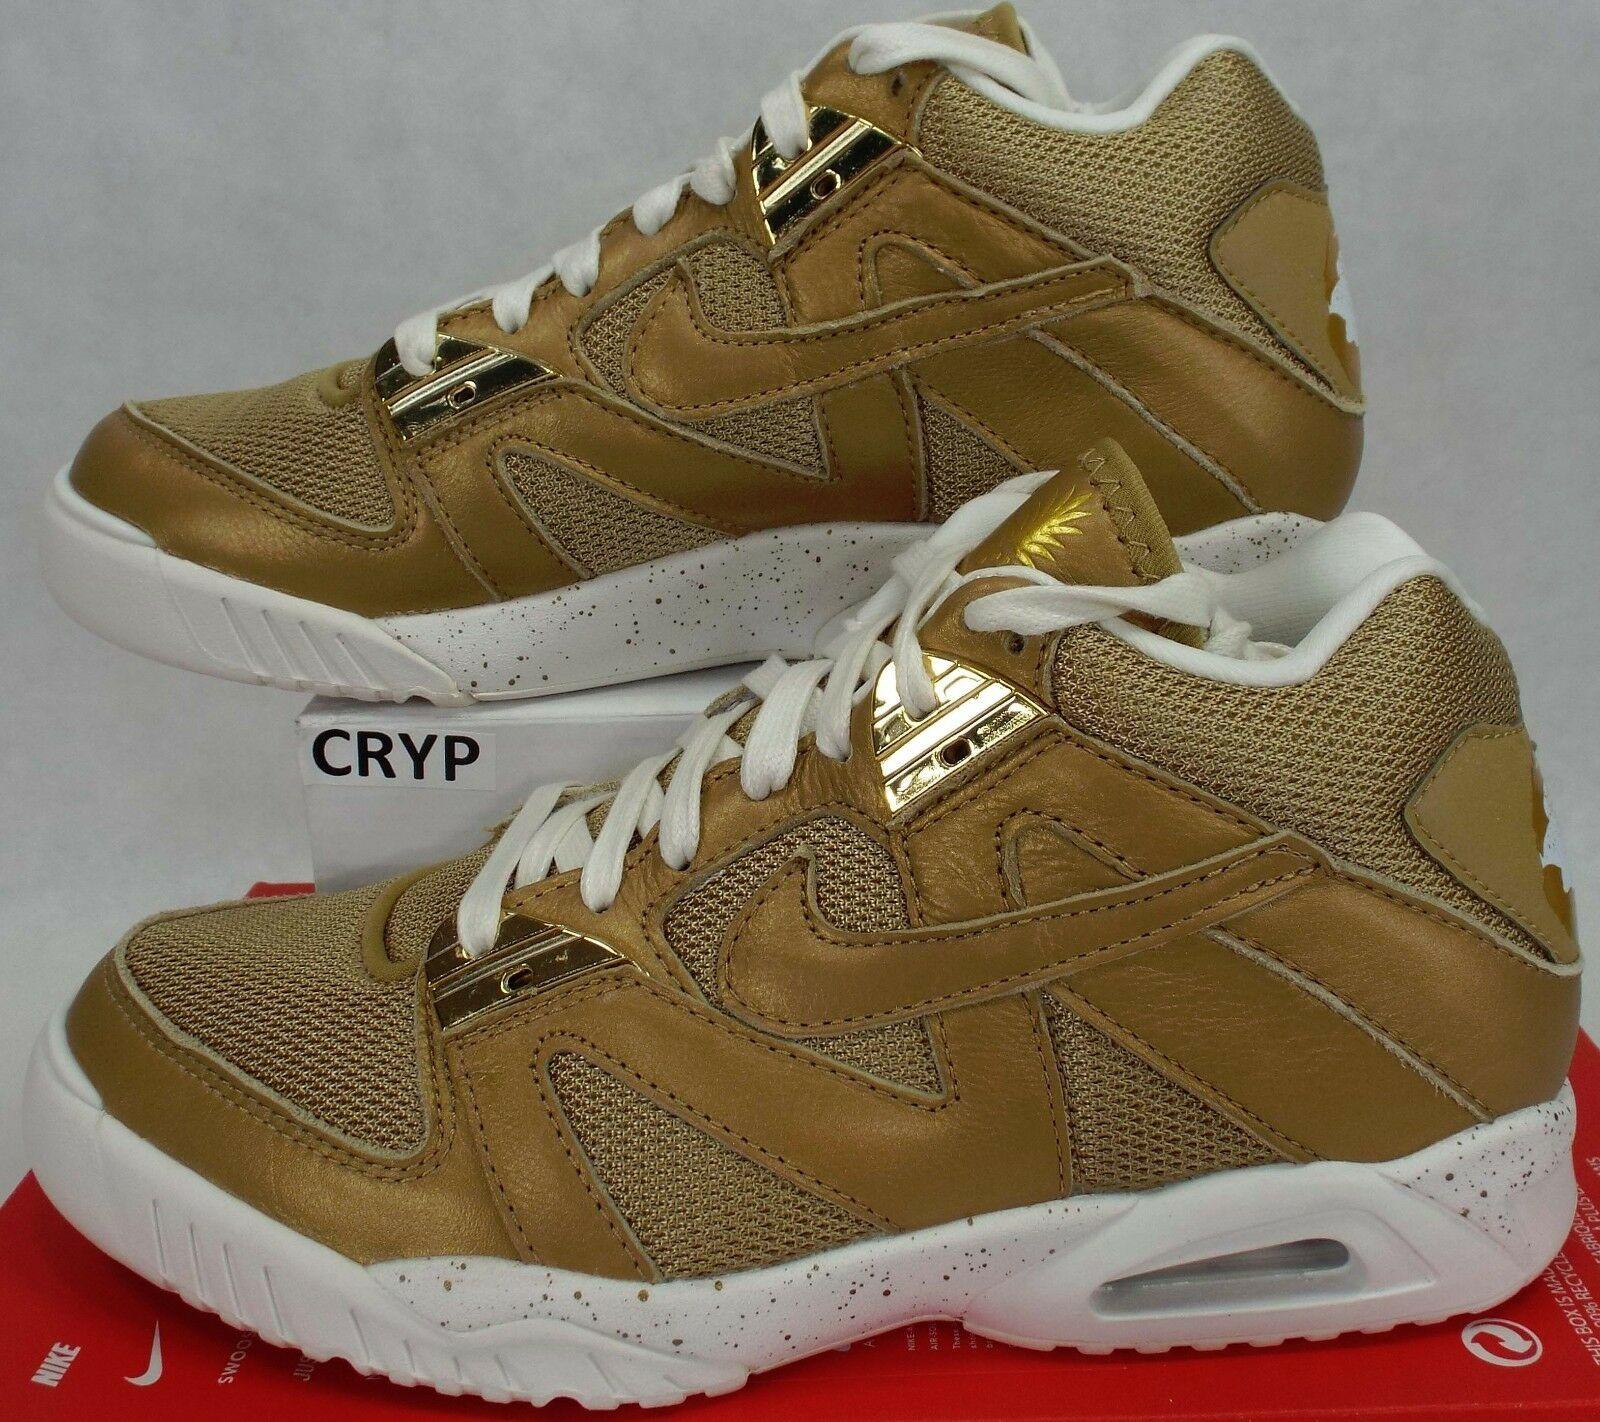 New Mens 9.5 NIKE Air Tech Challenge III 3 Gold Weiß schuhe  150 749957-701